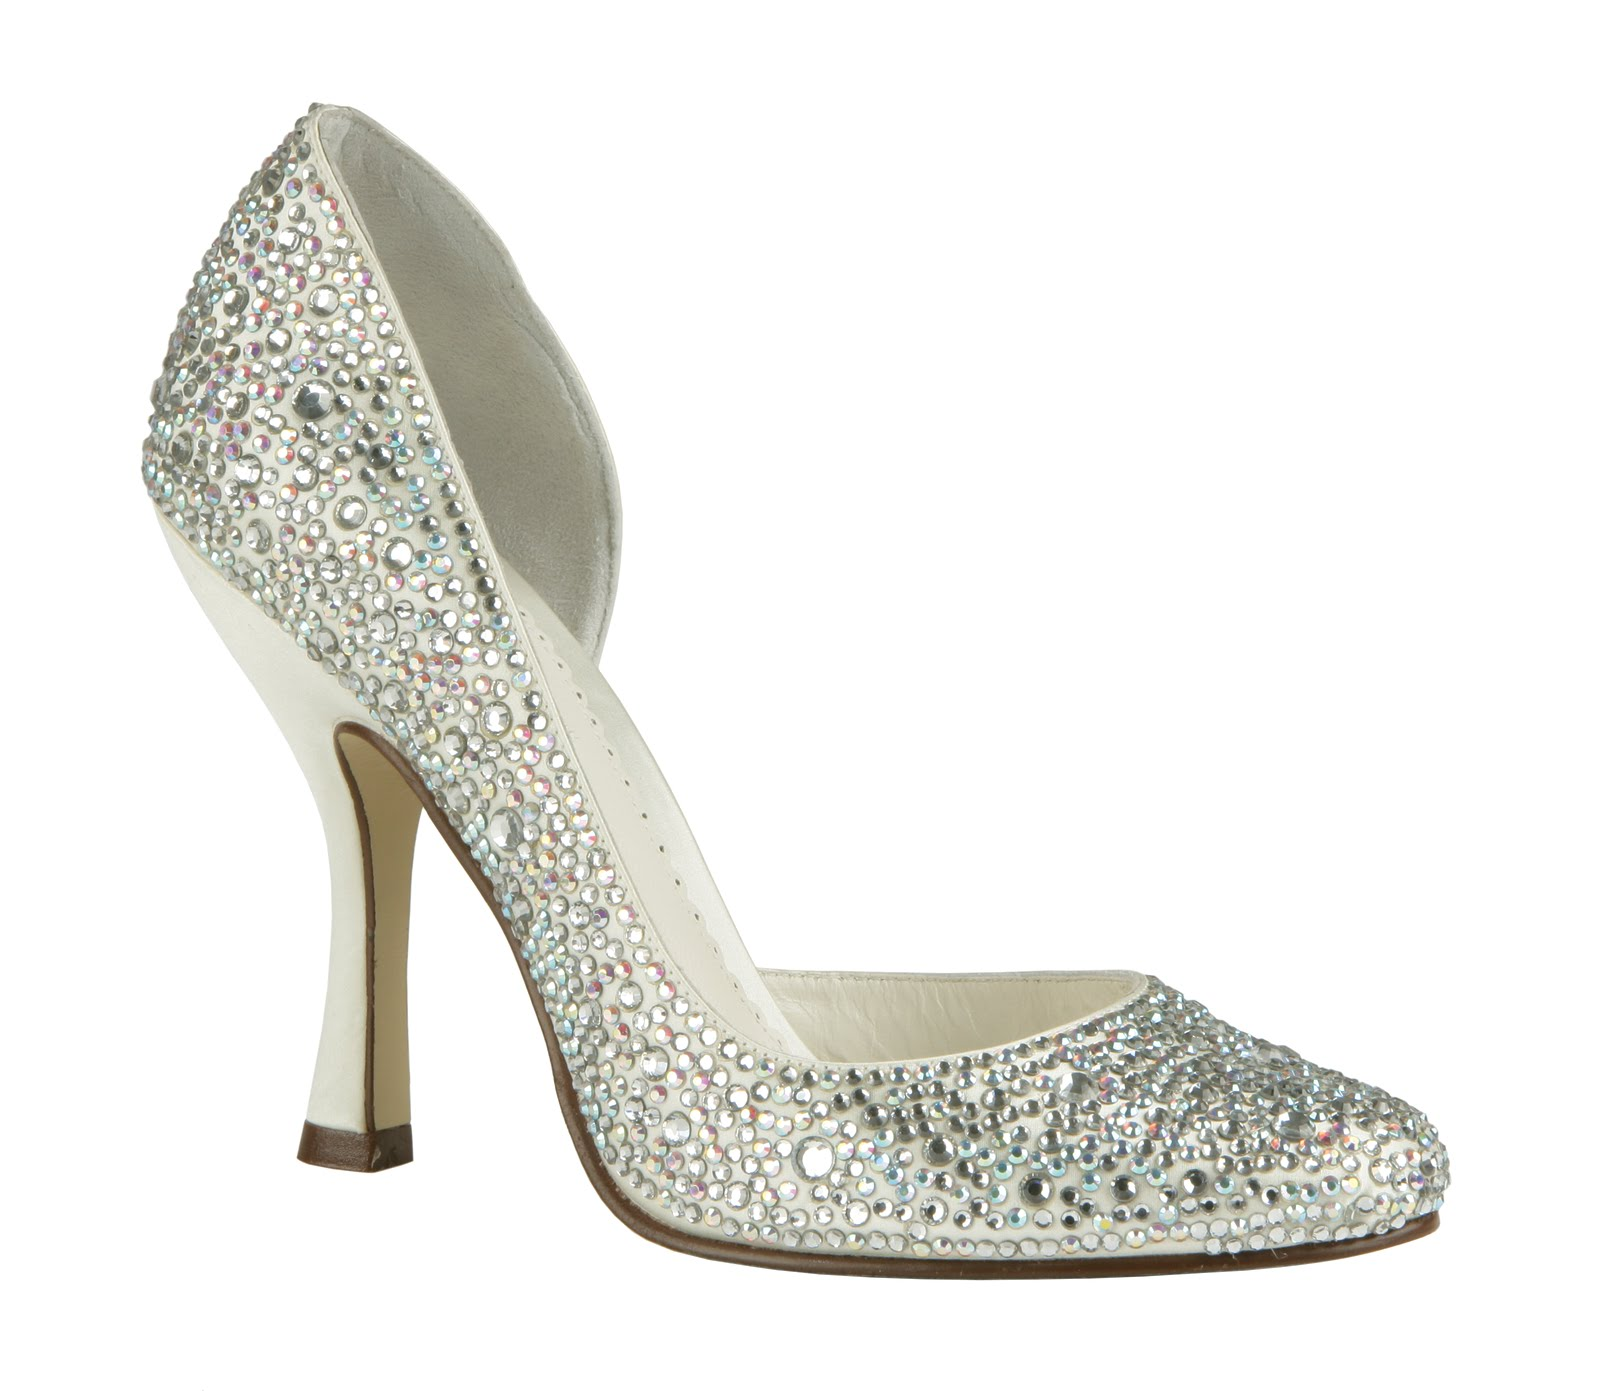 Meet the newest wedding shoes